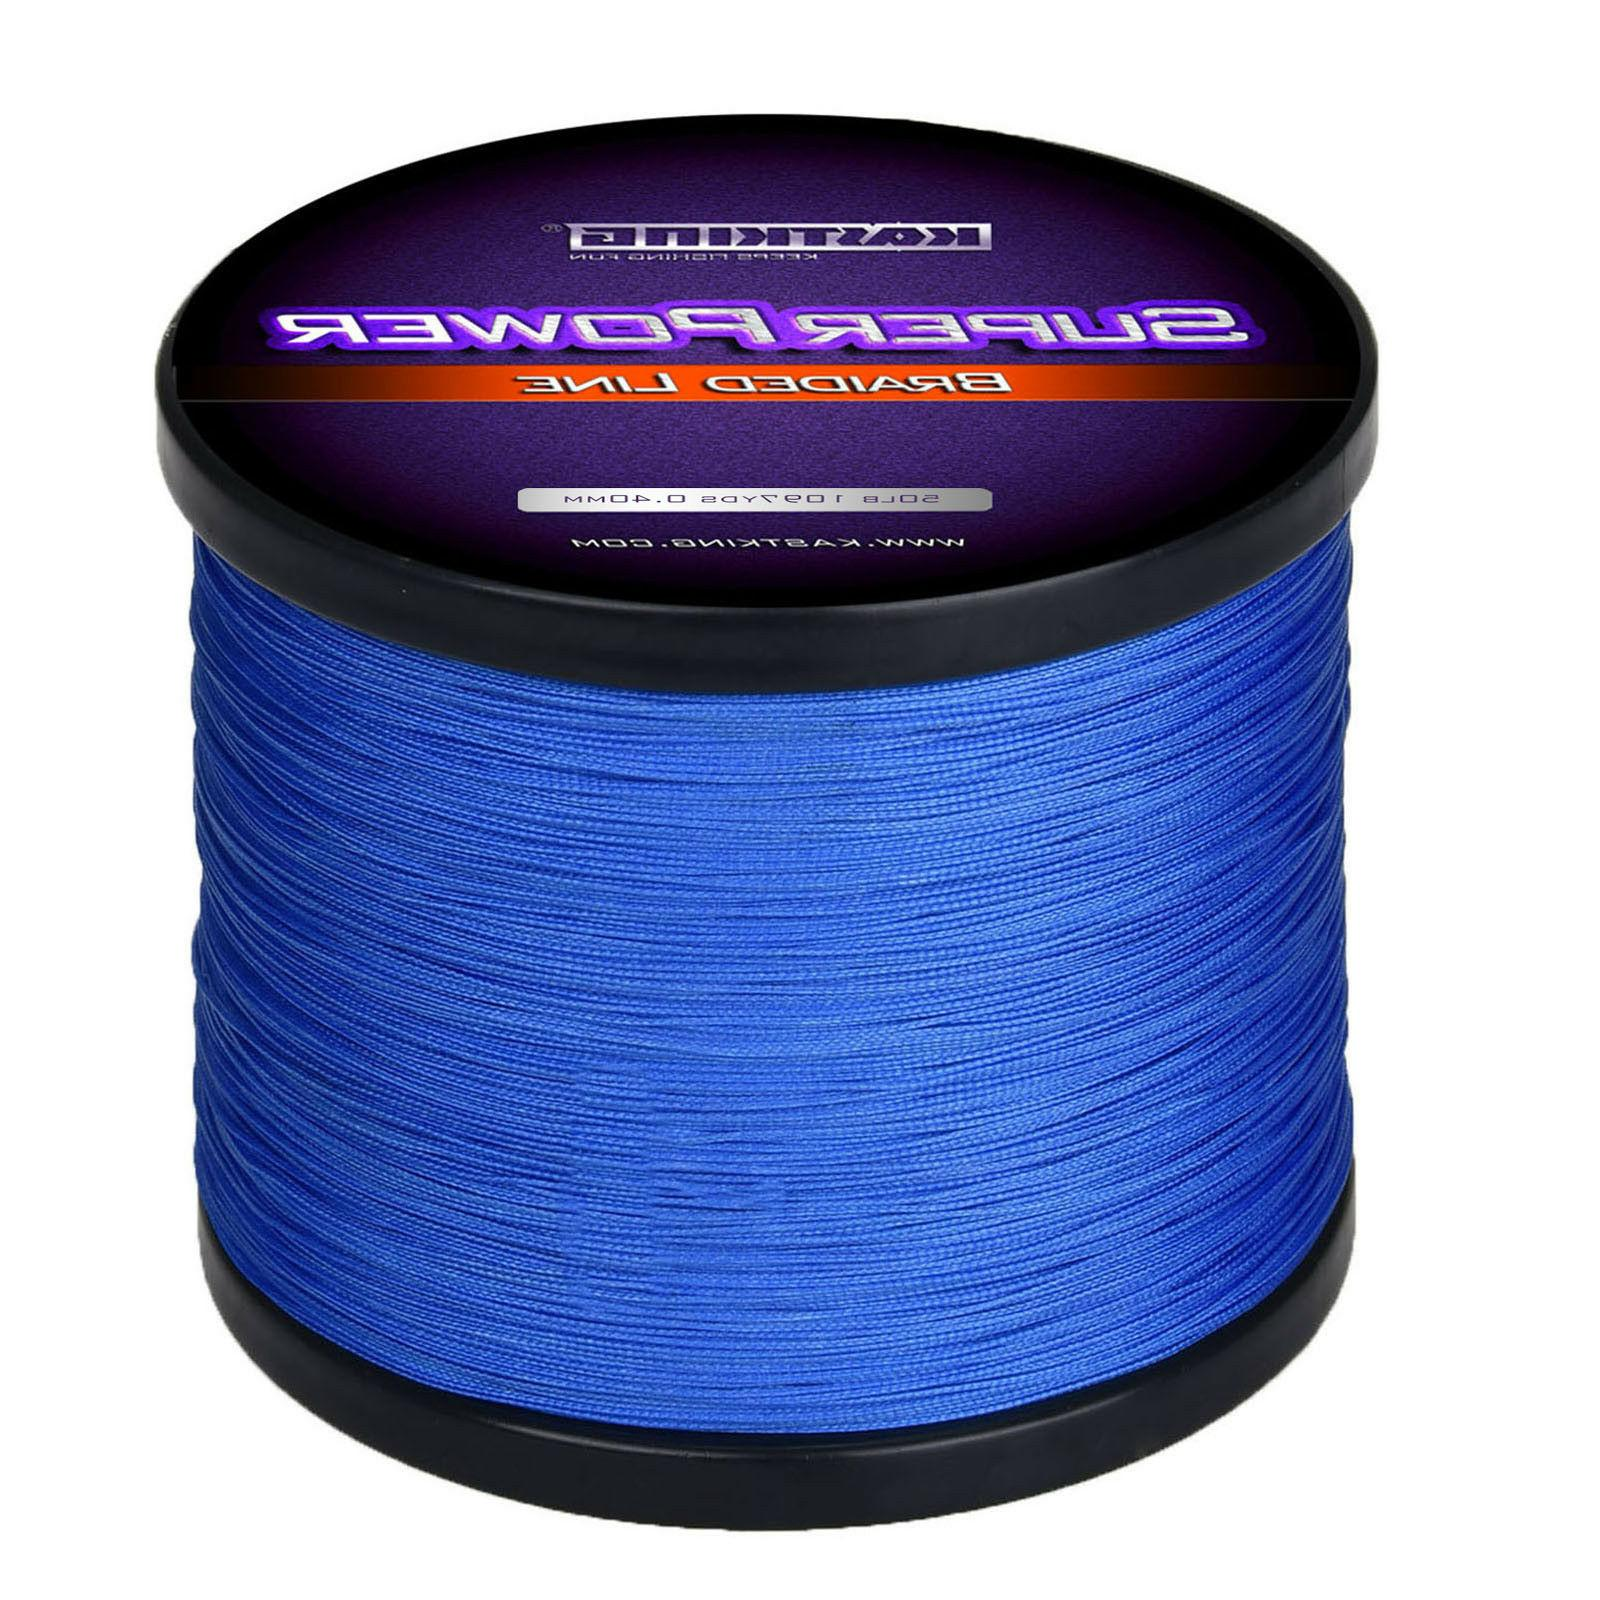 superpower braid fishing line 330 1094 yards